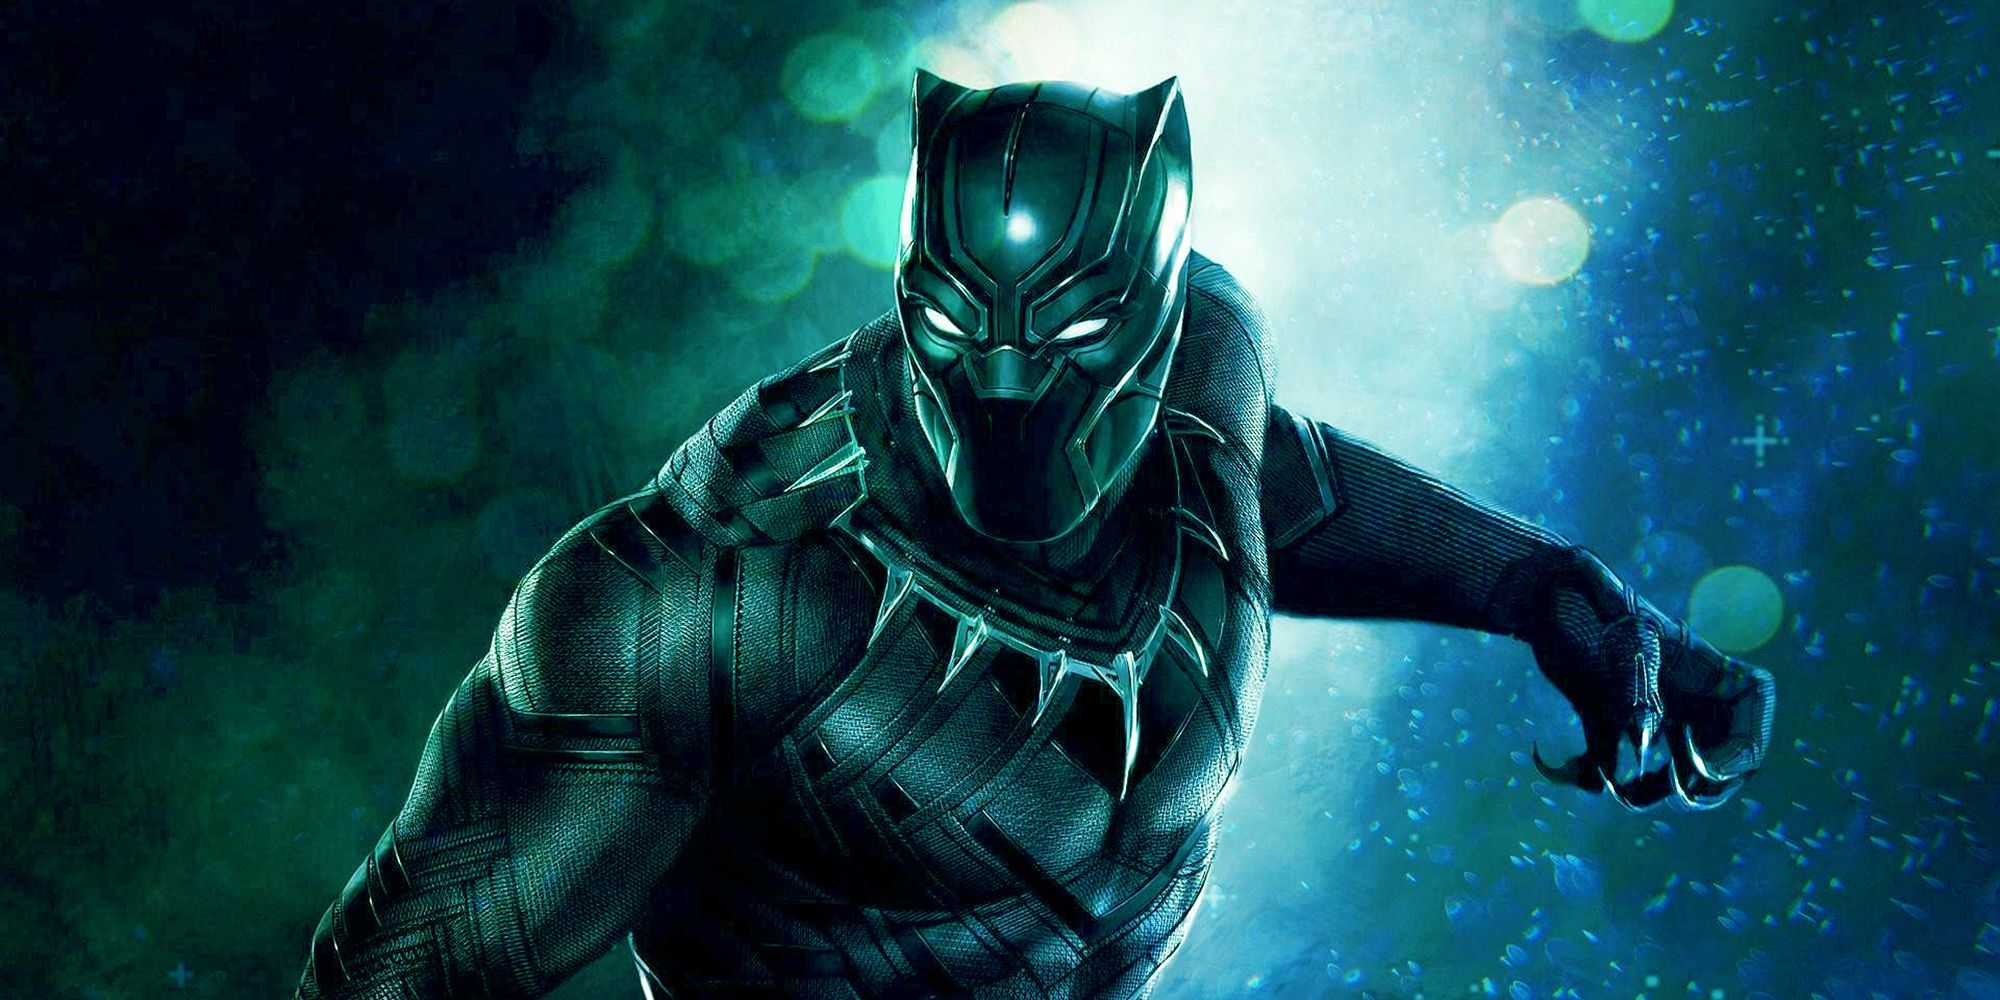 Black Panther: Chris Pratt Praises 'Thought Provoking' Marve